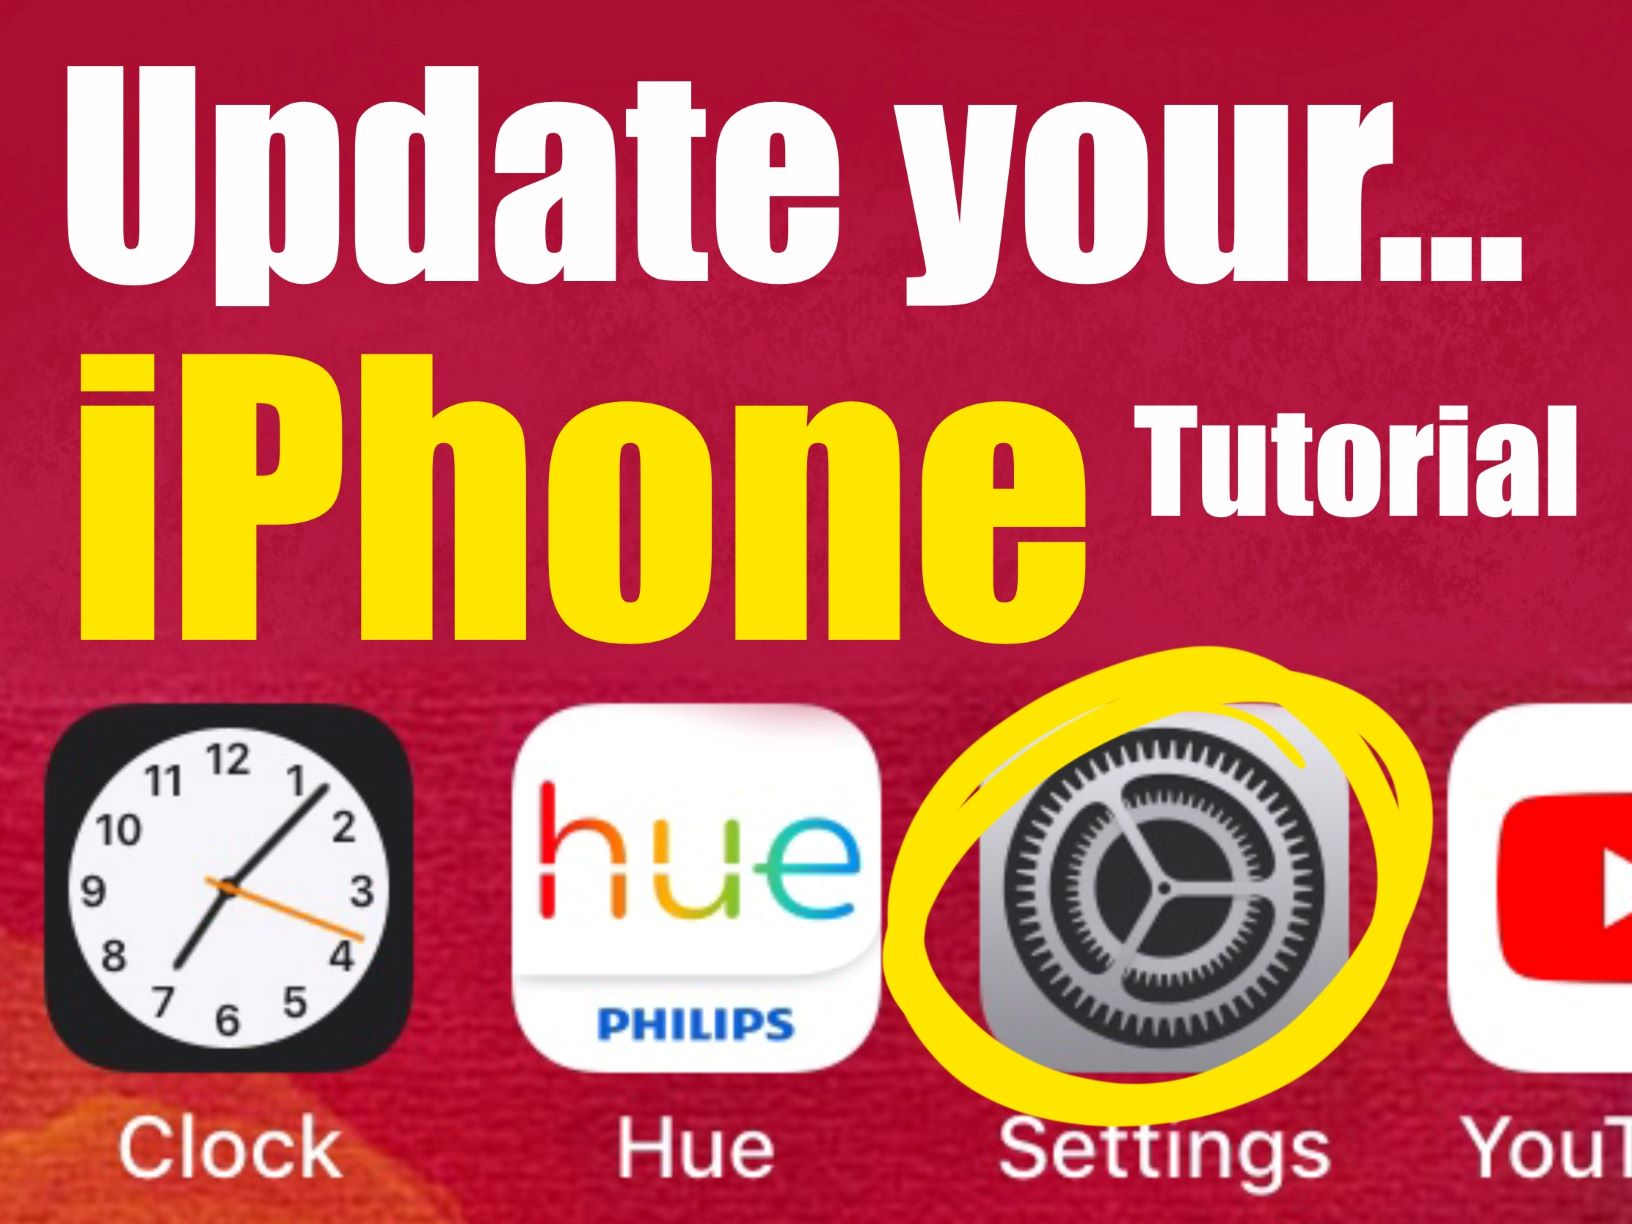 Update your iPhone iOS version